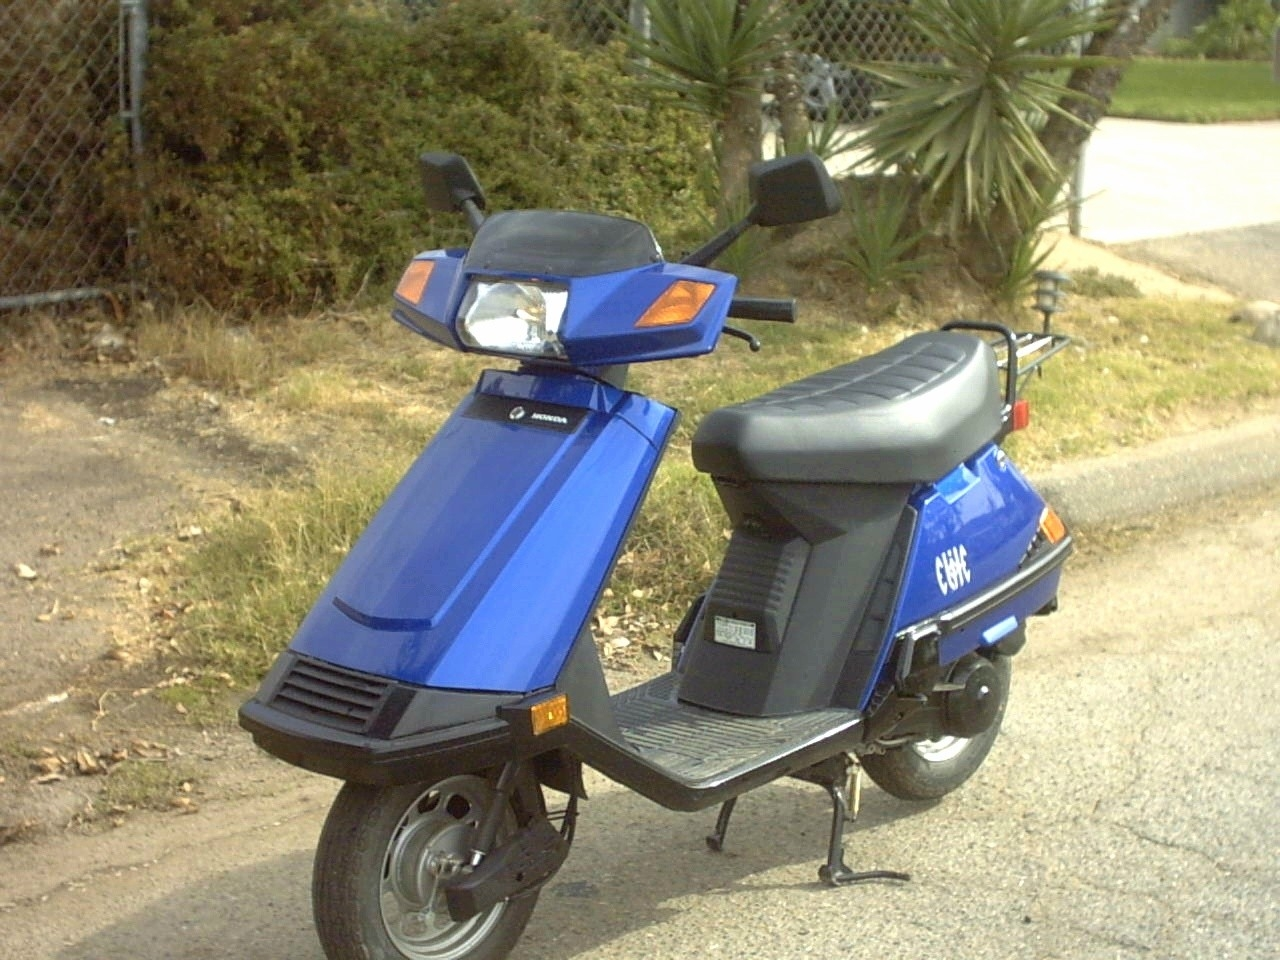 How Many Ccs Does The Honda Elite 80 Have Please Help Asap 1982 Suzuki Moped Scooter